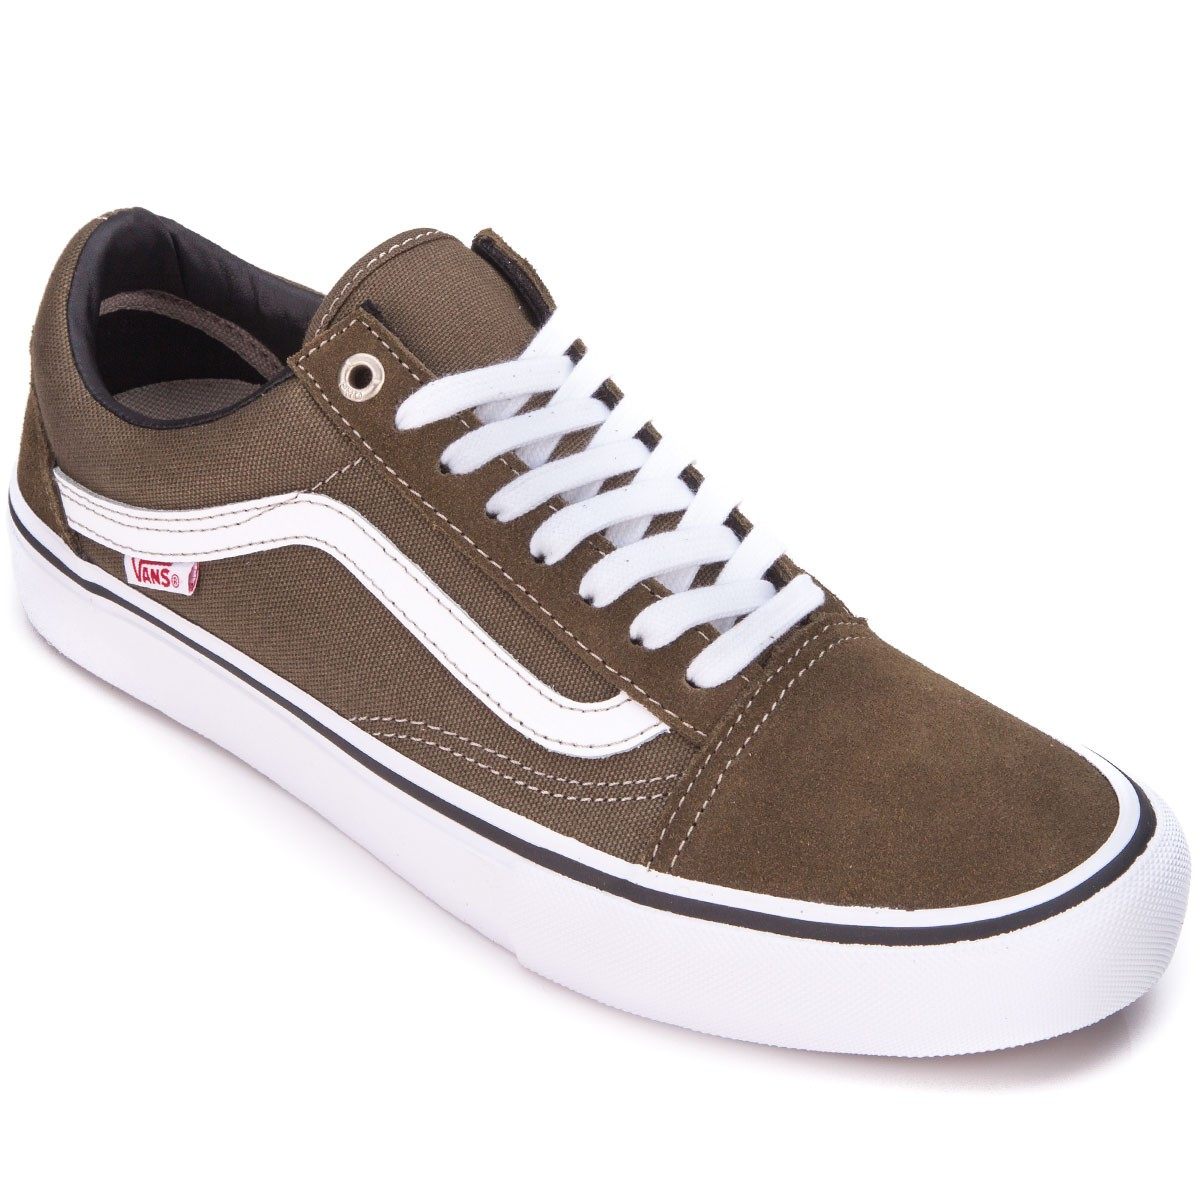 cafa986344 Vans Old Skool Pro Shoes